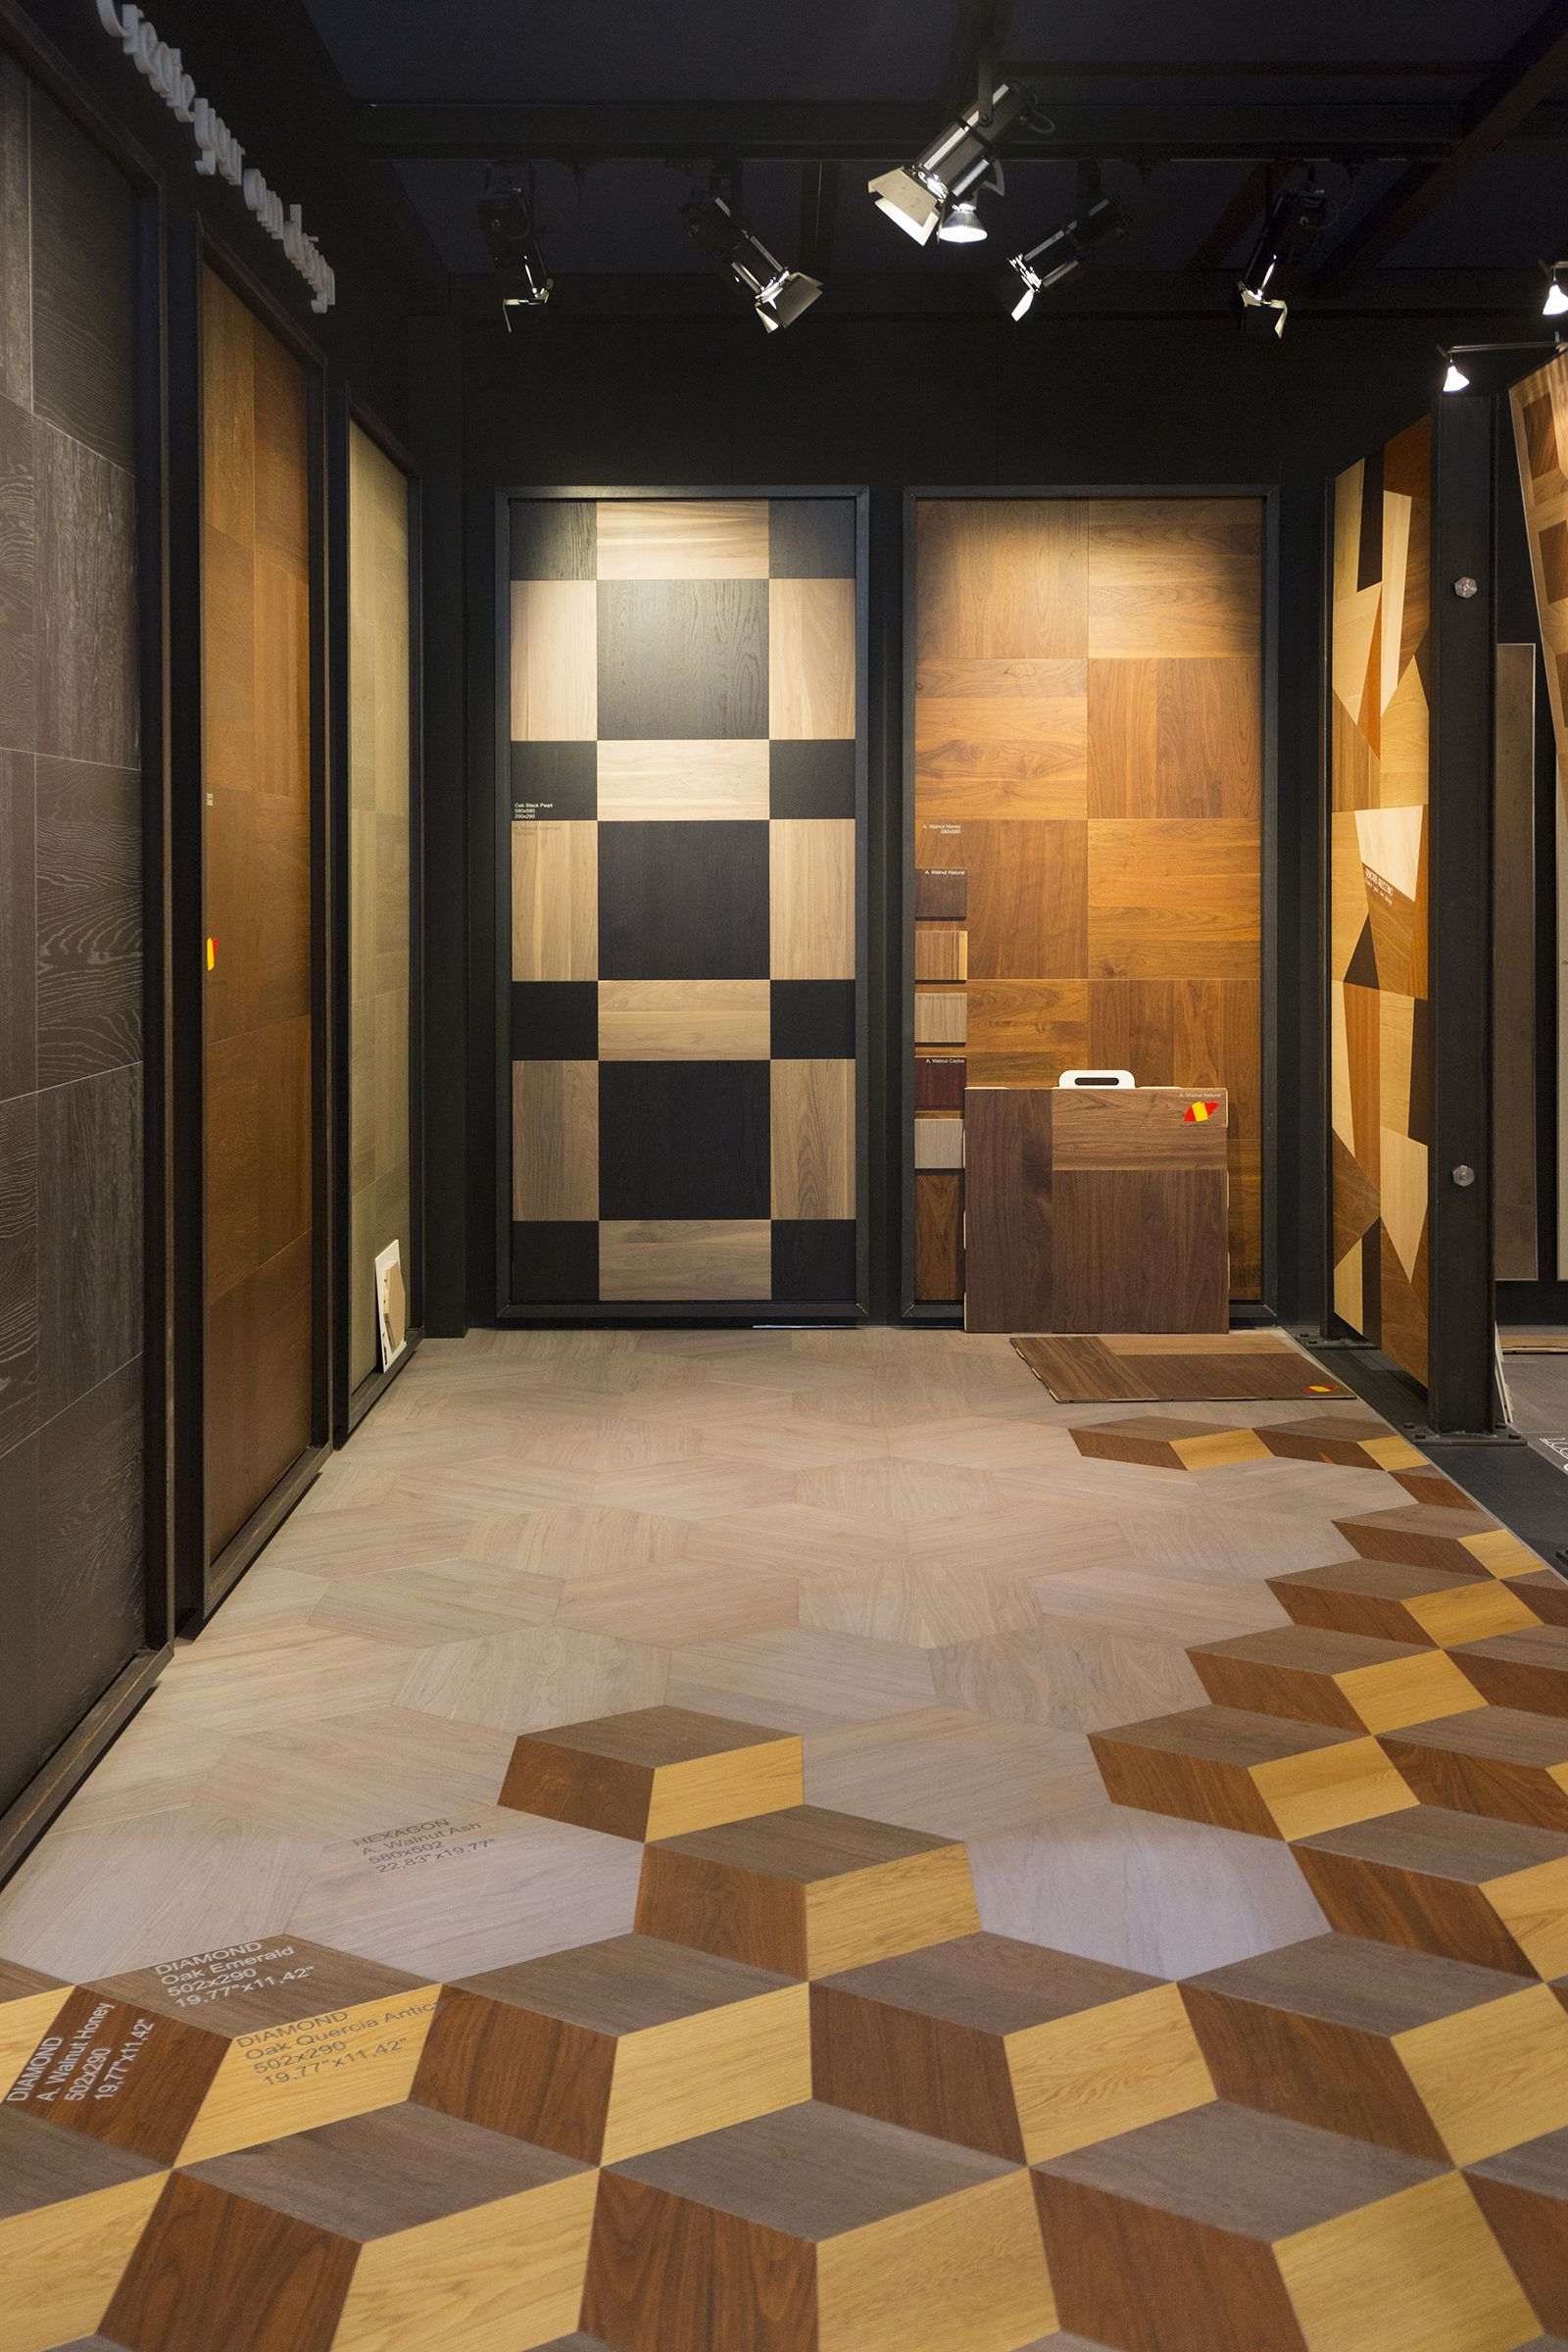 Pin by Dlabuonora on stands Wood laminate flooring, Wood